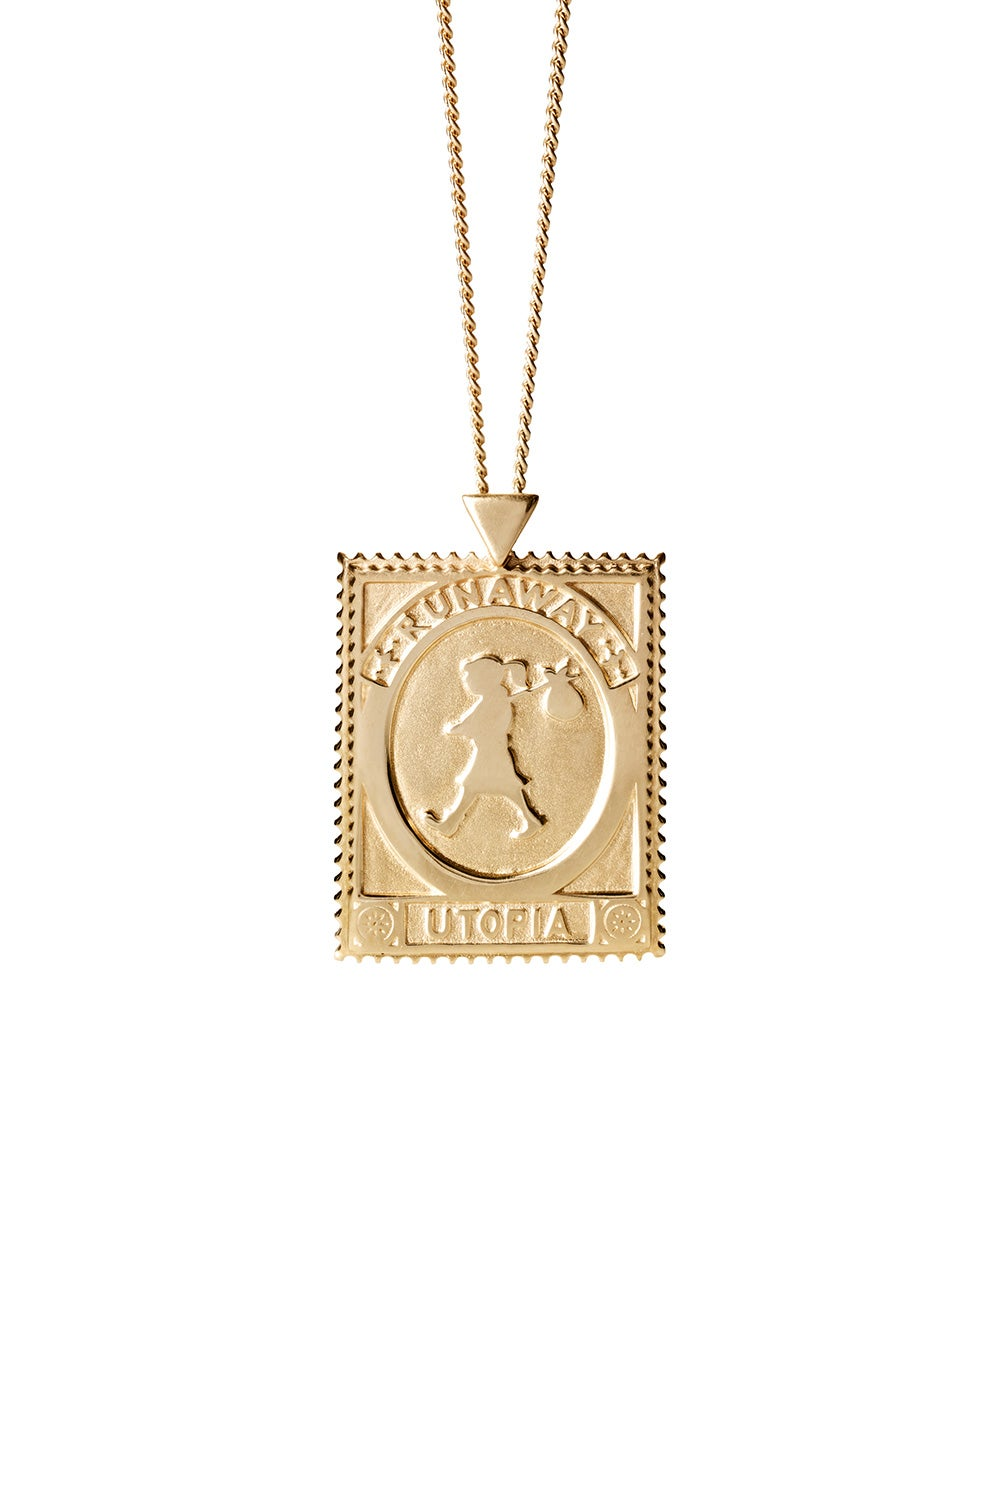 Utopia Stamp Necklace Gold